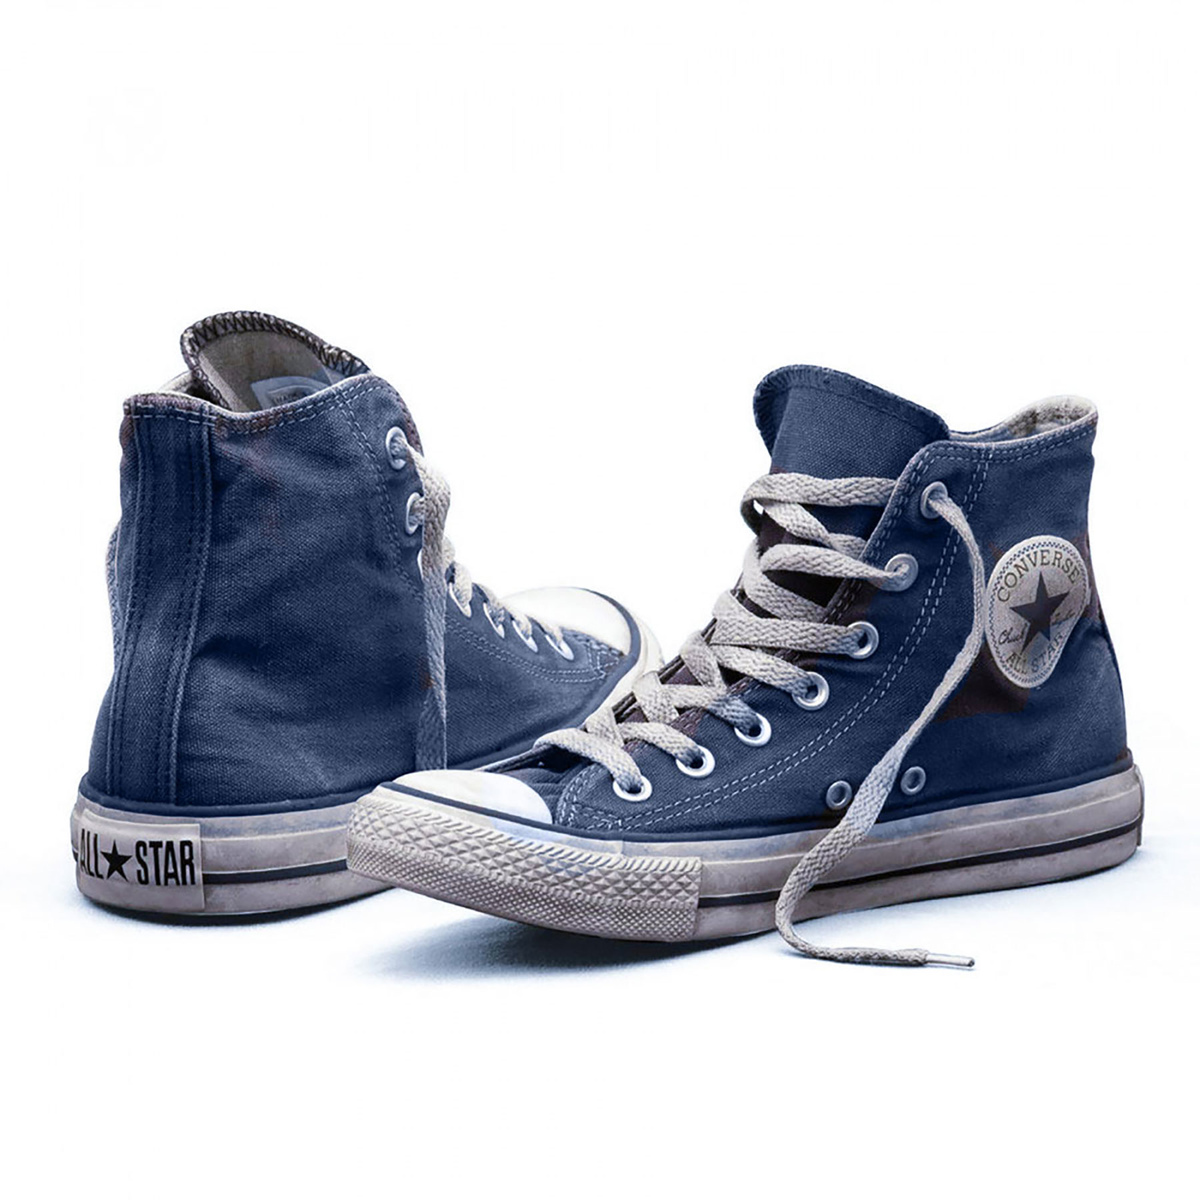 CHUCK TAYLOR ALL STAR HI LIMITED EDITION